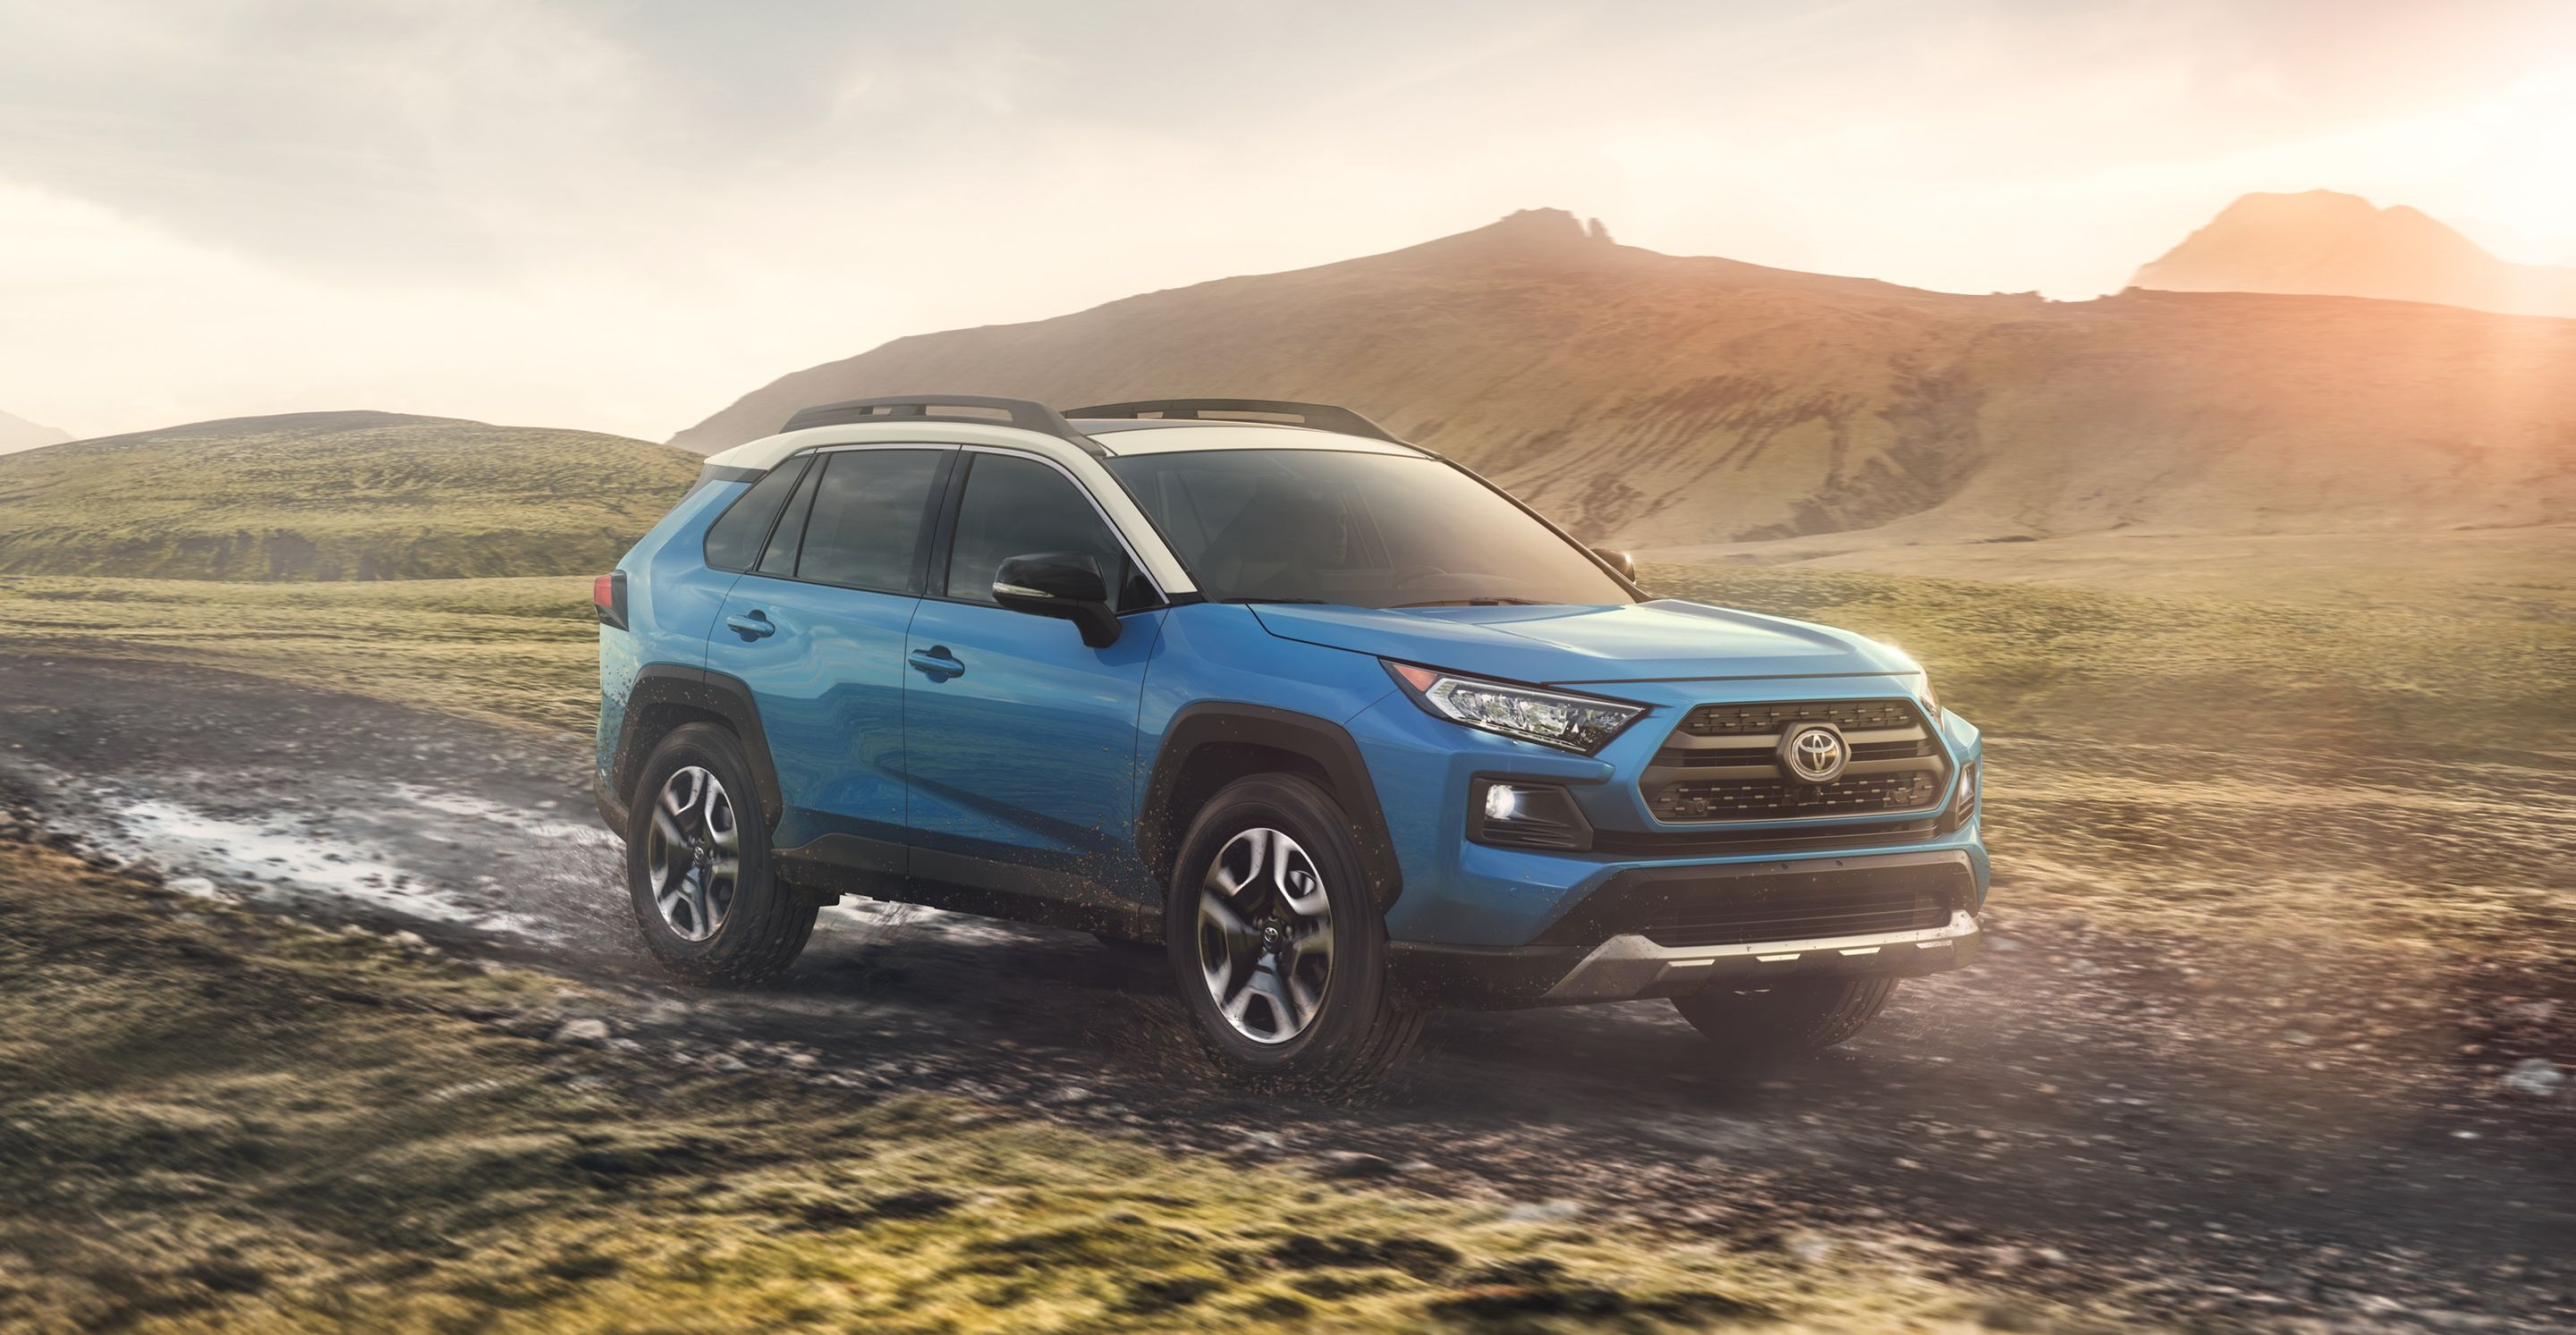 2019 Toyota RAV4 Leasing near Loves Park, IL